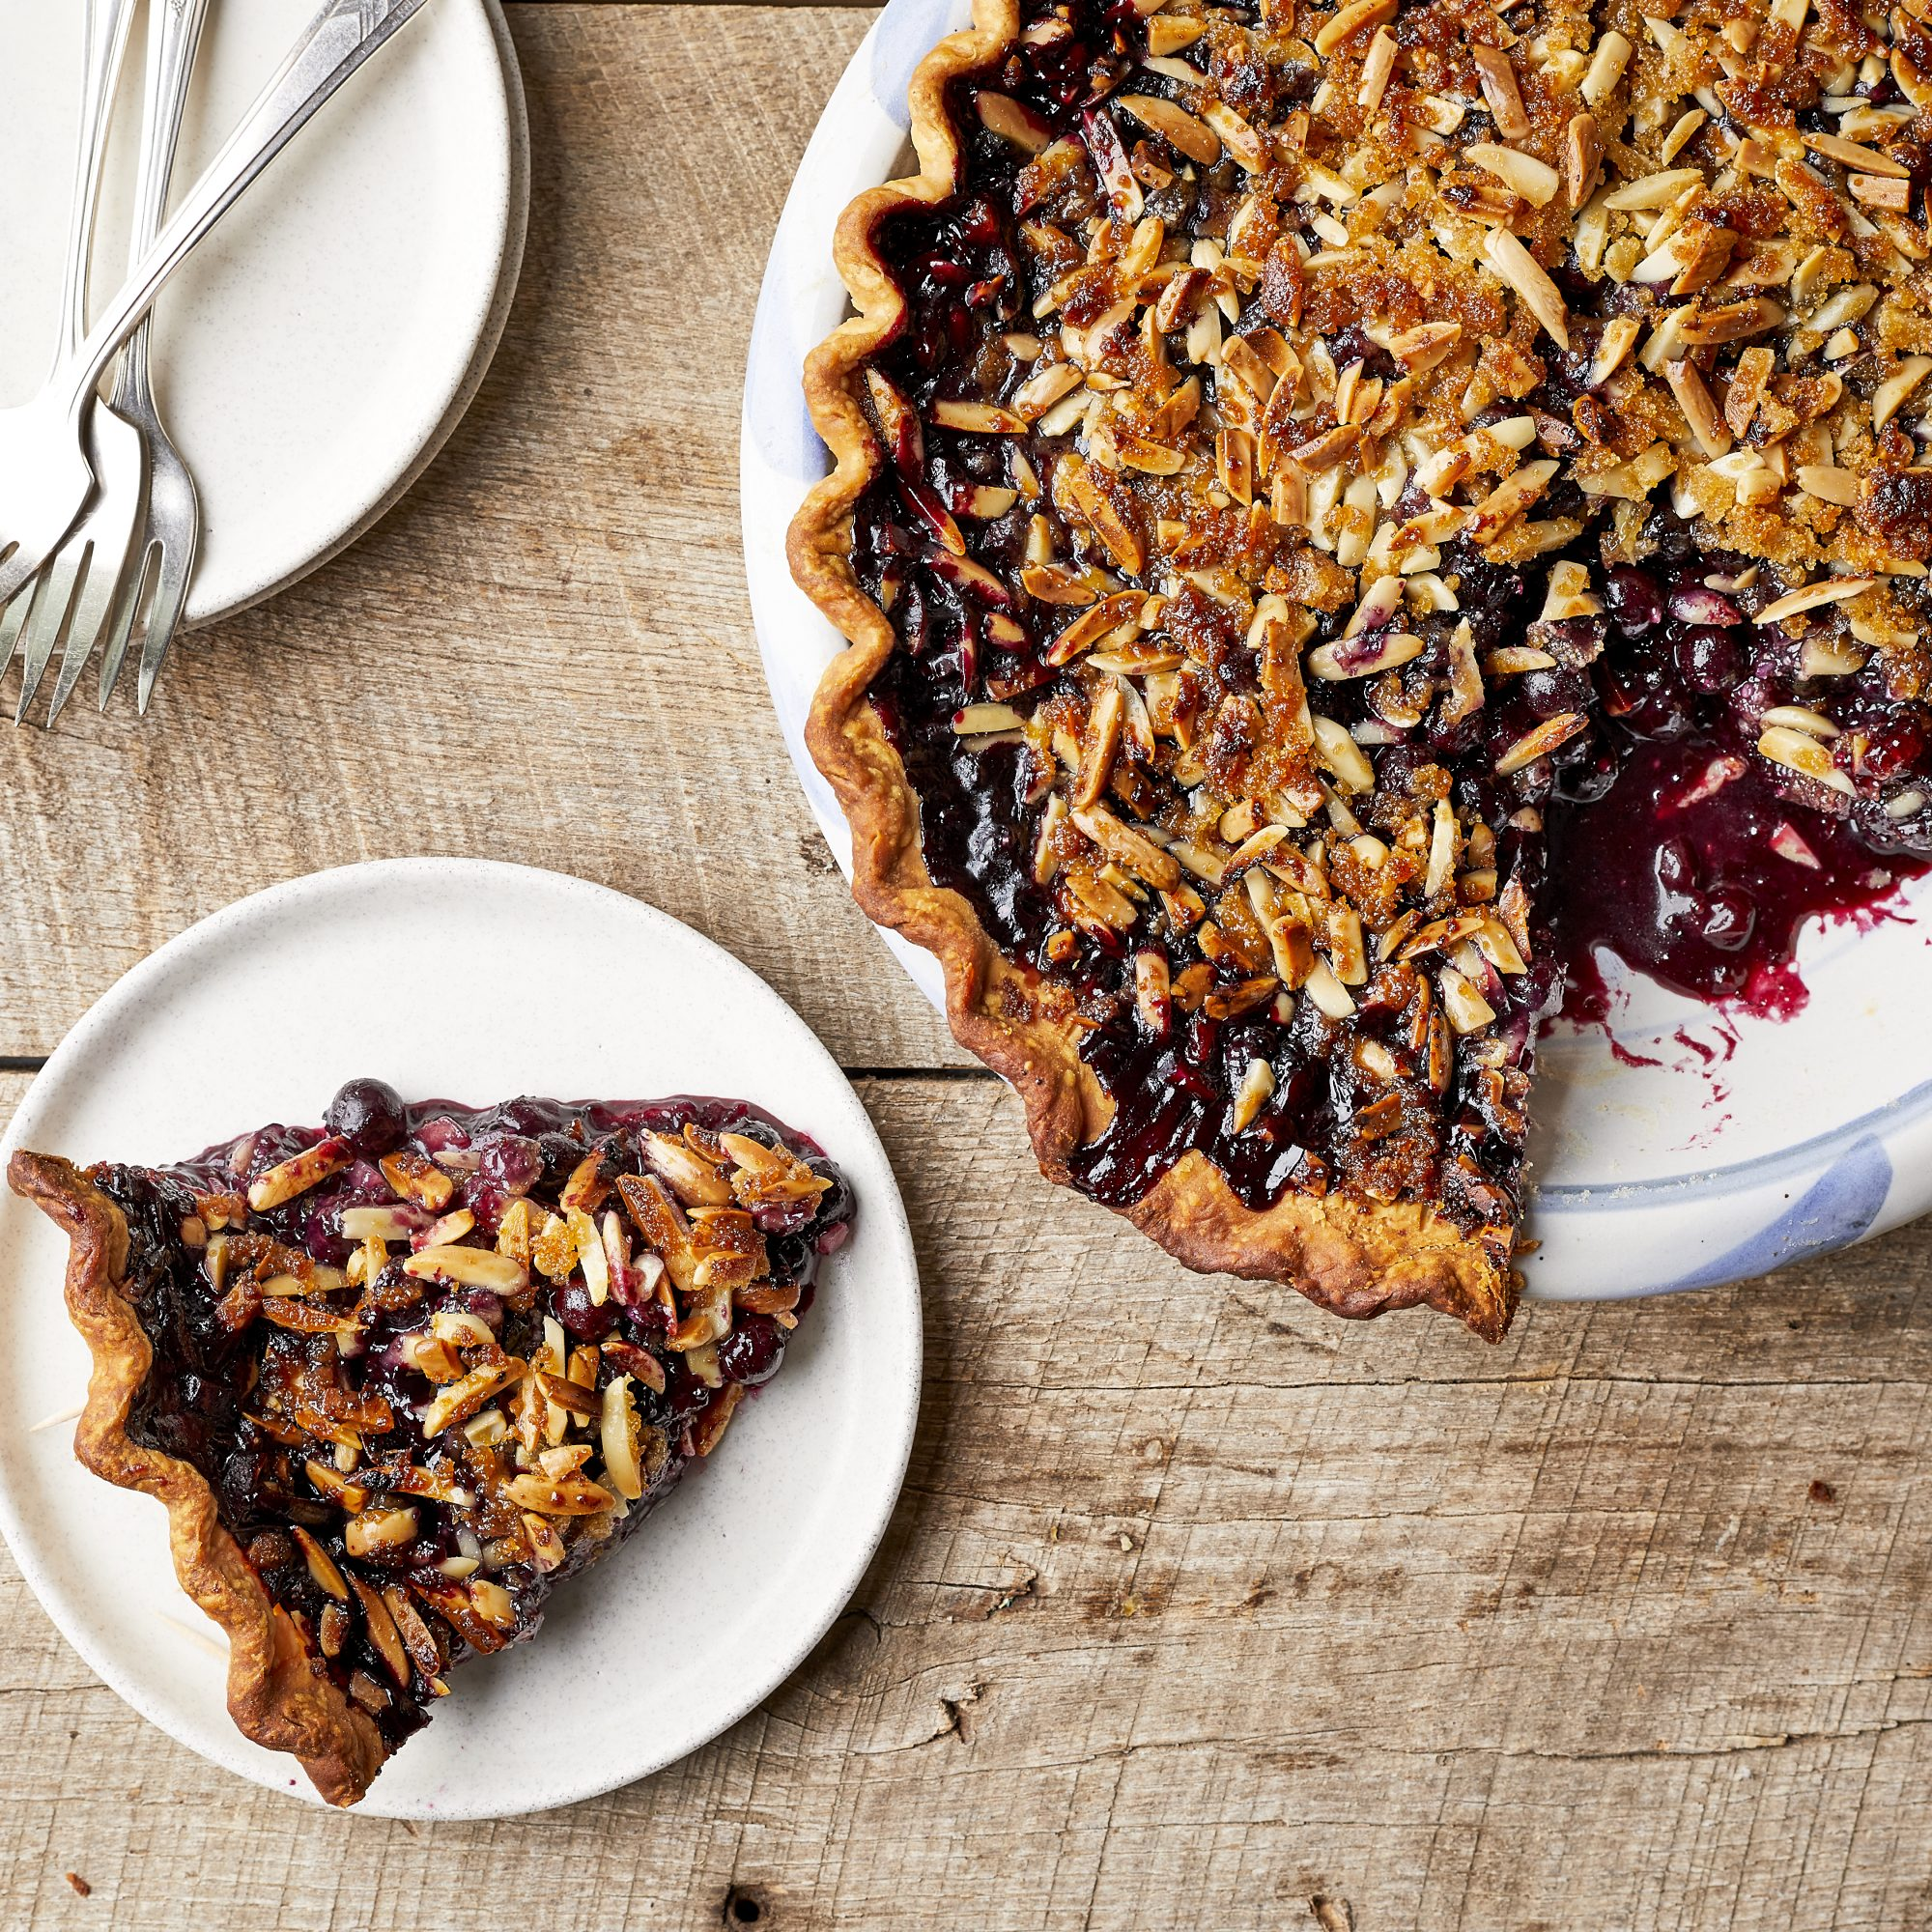 Blueberry-Lavender Pie With Almond Streusel